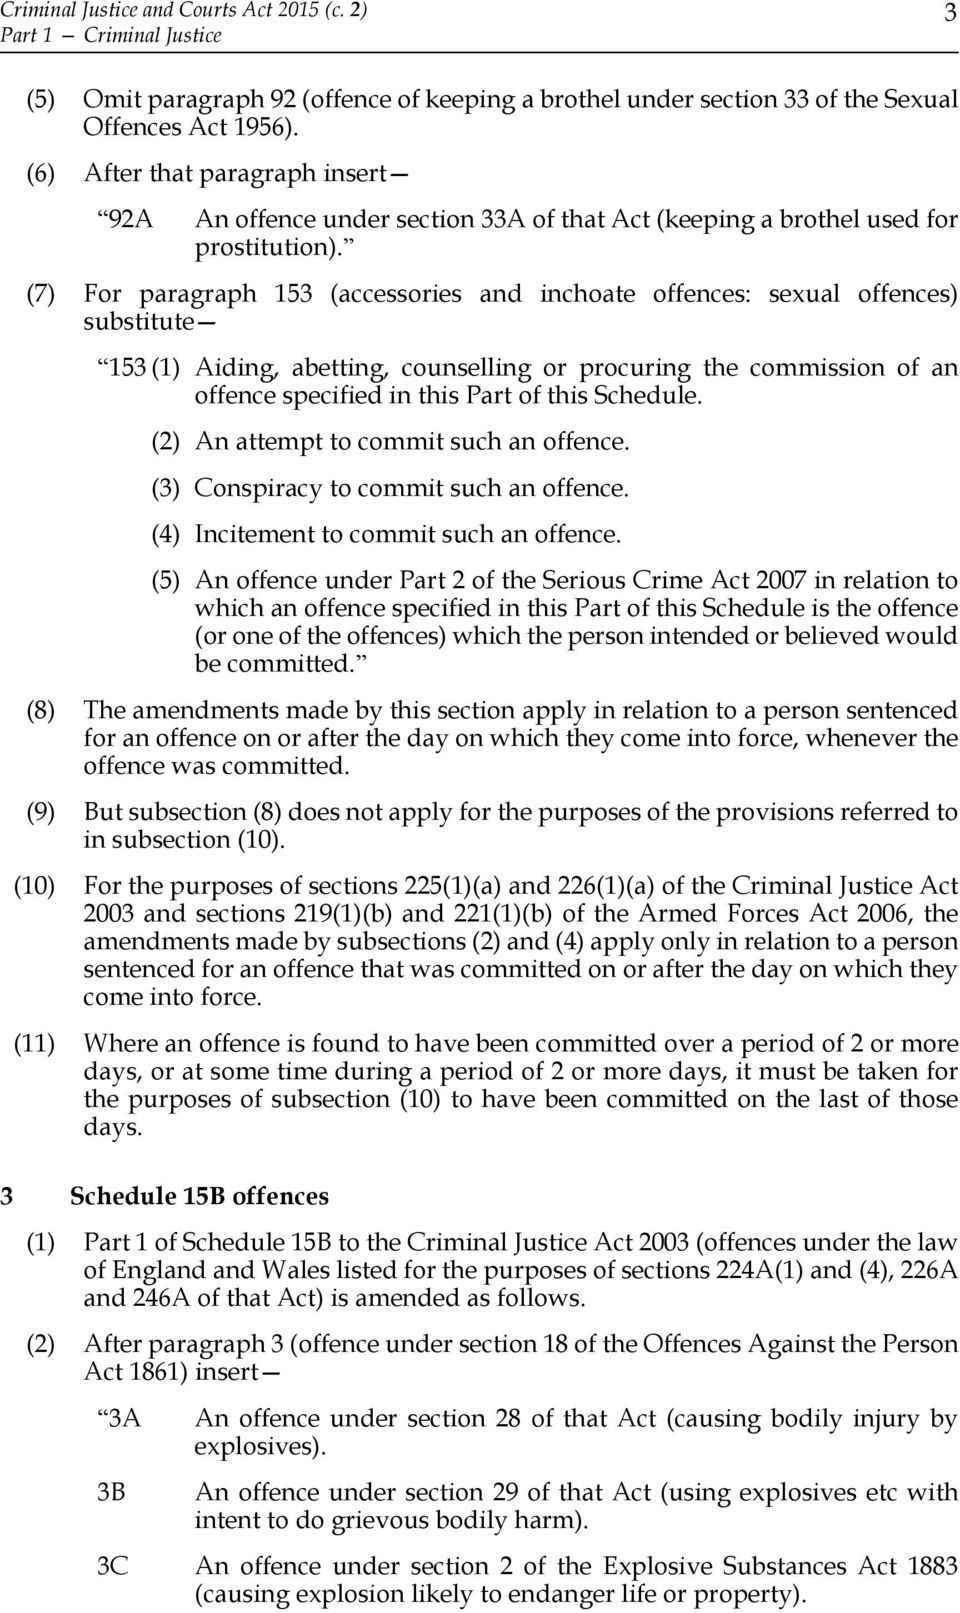 (7) For paragraph 153 (accessories and inchoate offences: sexual offences) substitute 153 (1) Aiding, abetting, counselling or procuring the commission of an offence specified in this Part of this